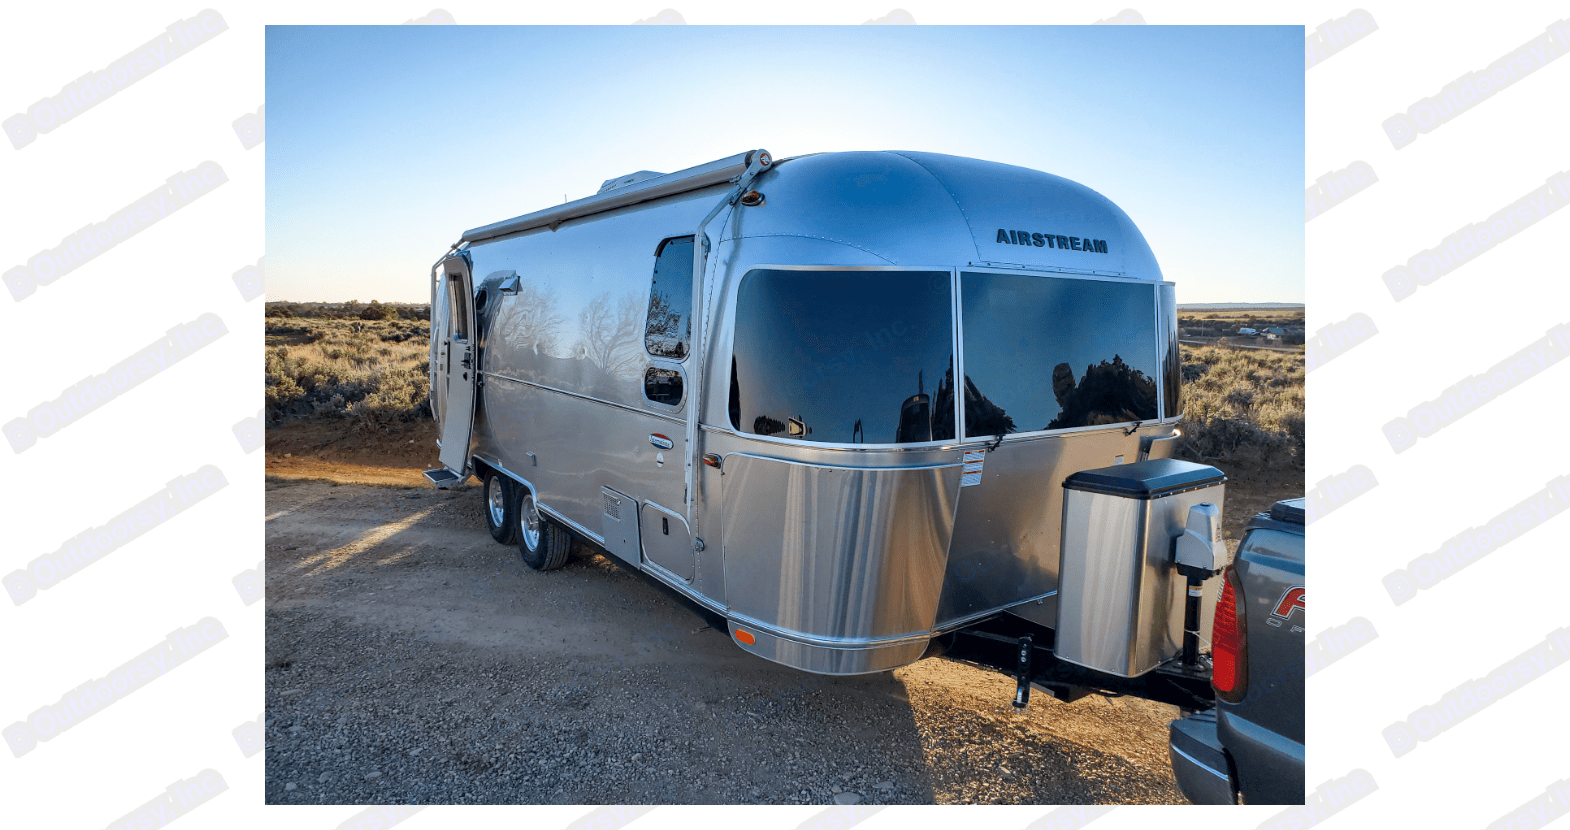 The ultimate glamping experience in the Airstream Serenity! . Airstream International 2018